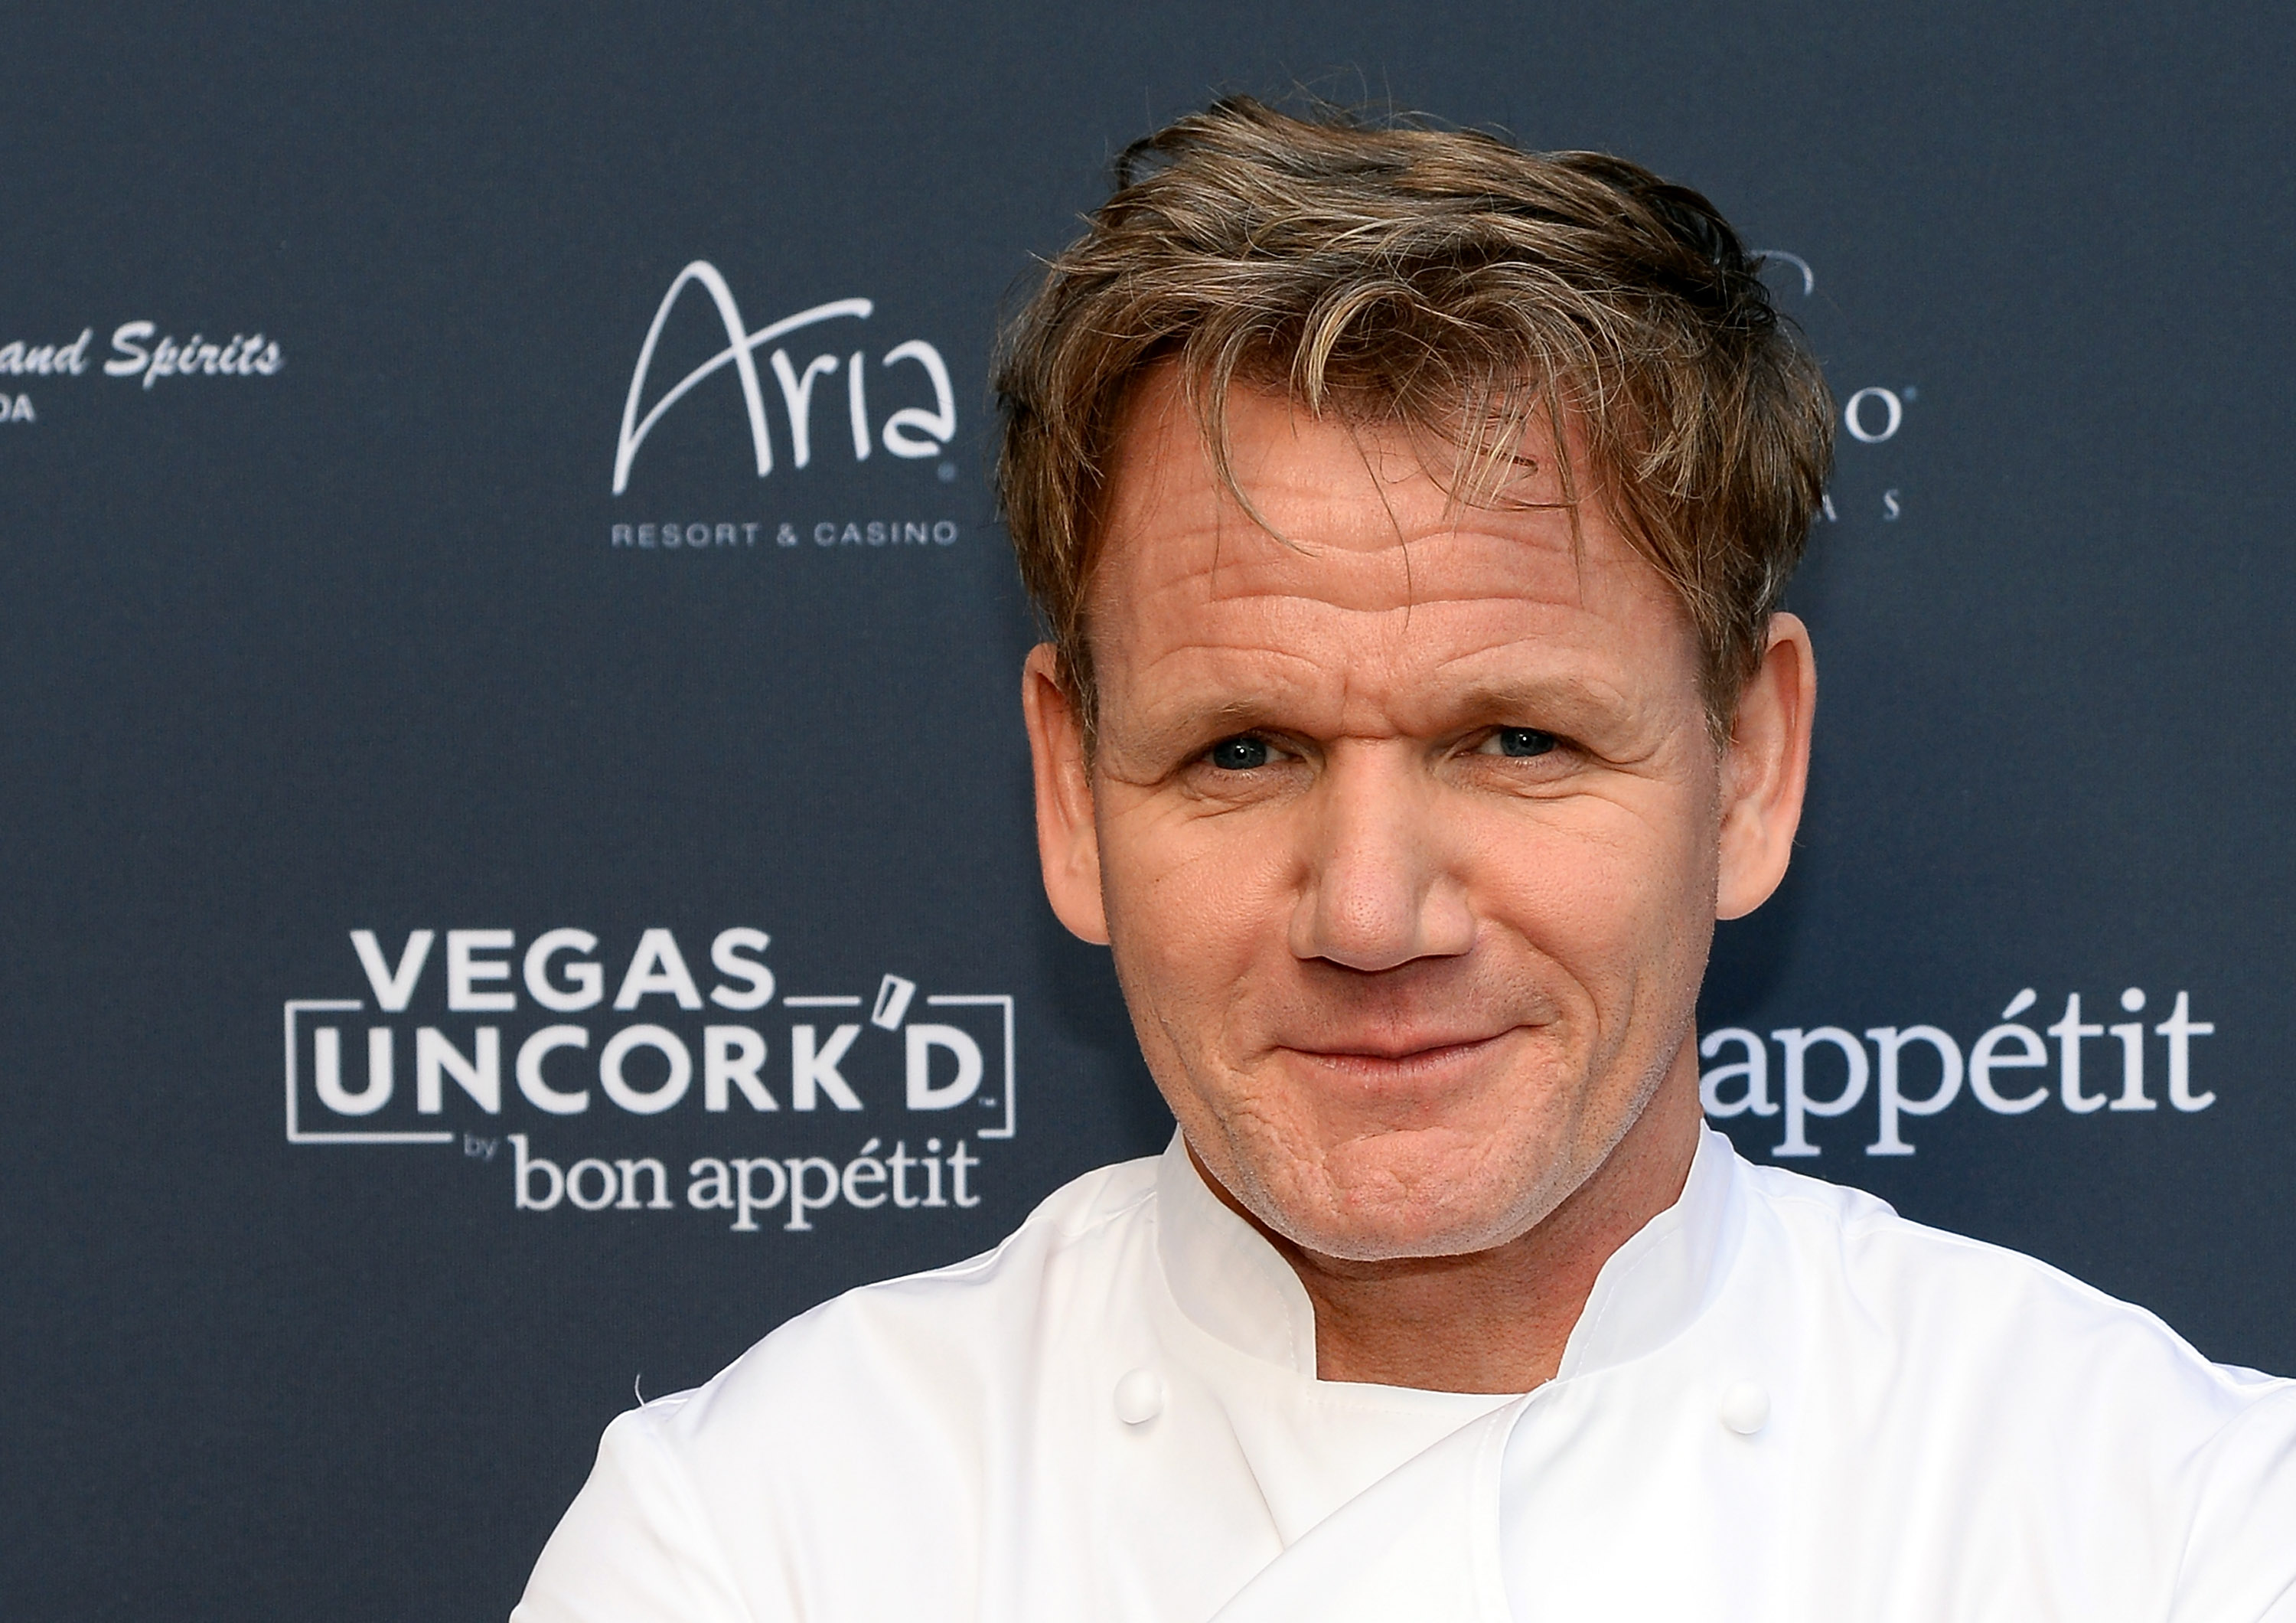 Gordon Ramsay will face his worst nightmare and you can watch him do it – for a good cause